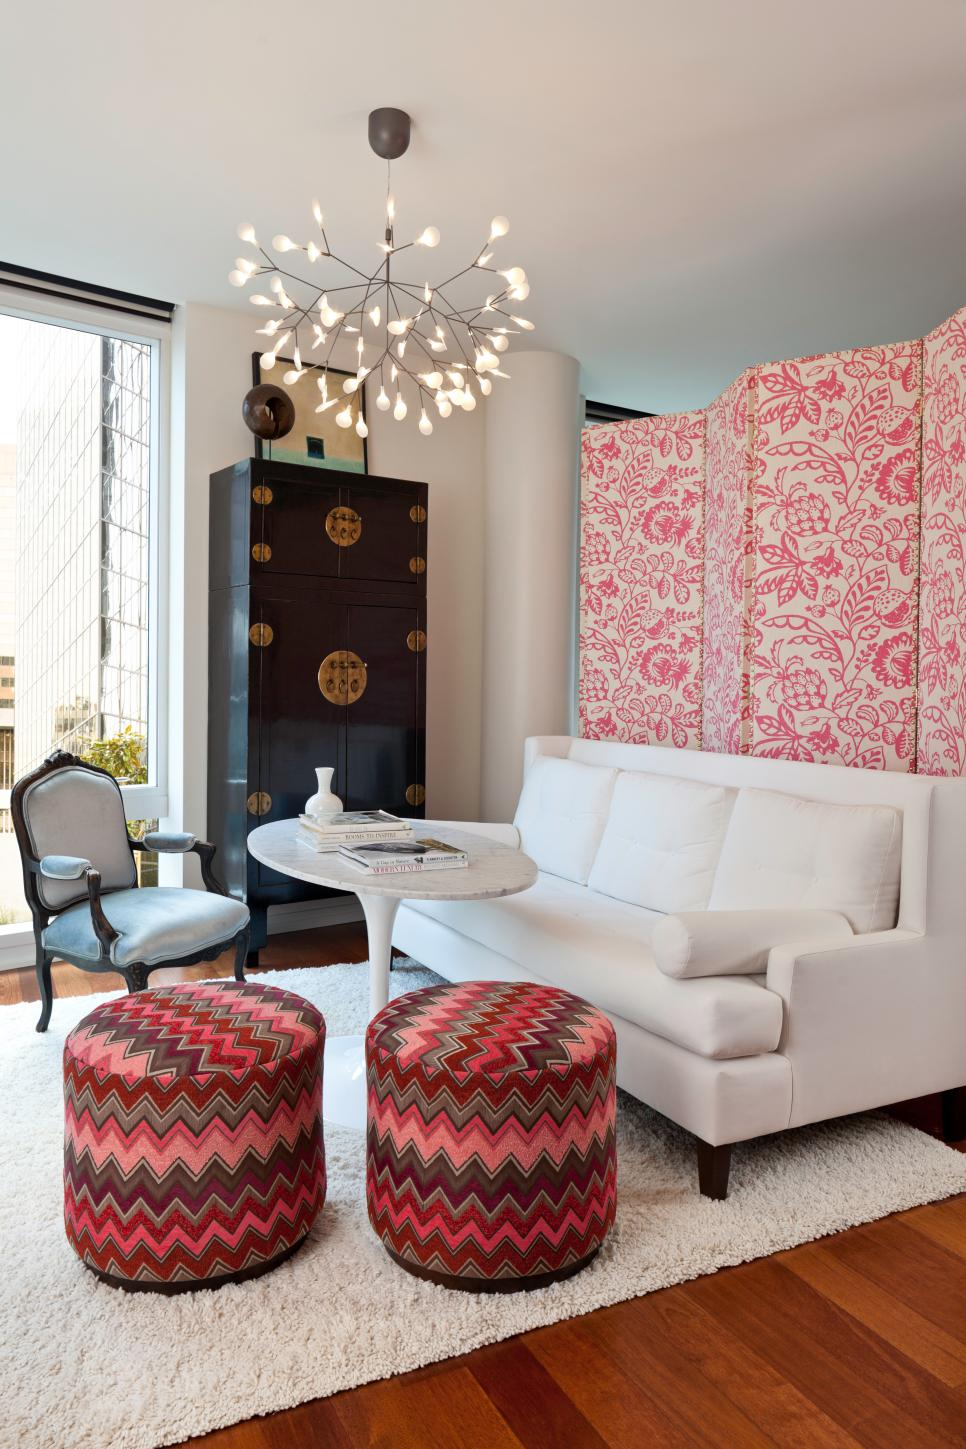 Living Room With Pink Floral Partition, White Sofa and Chevron Stools